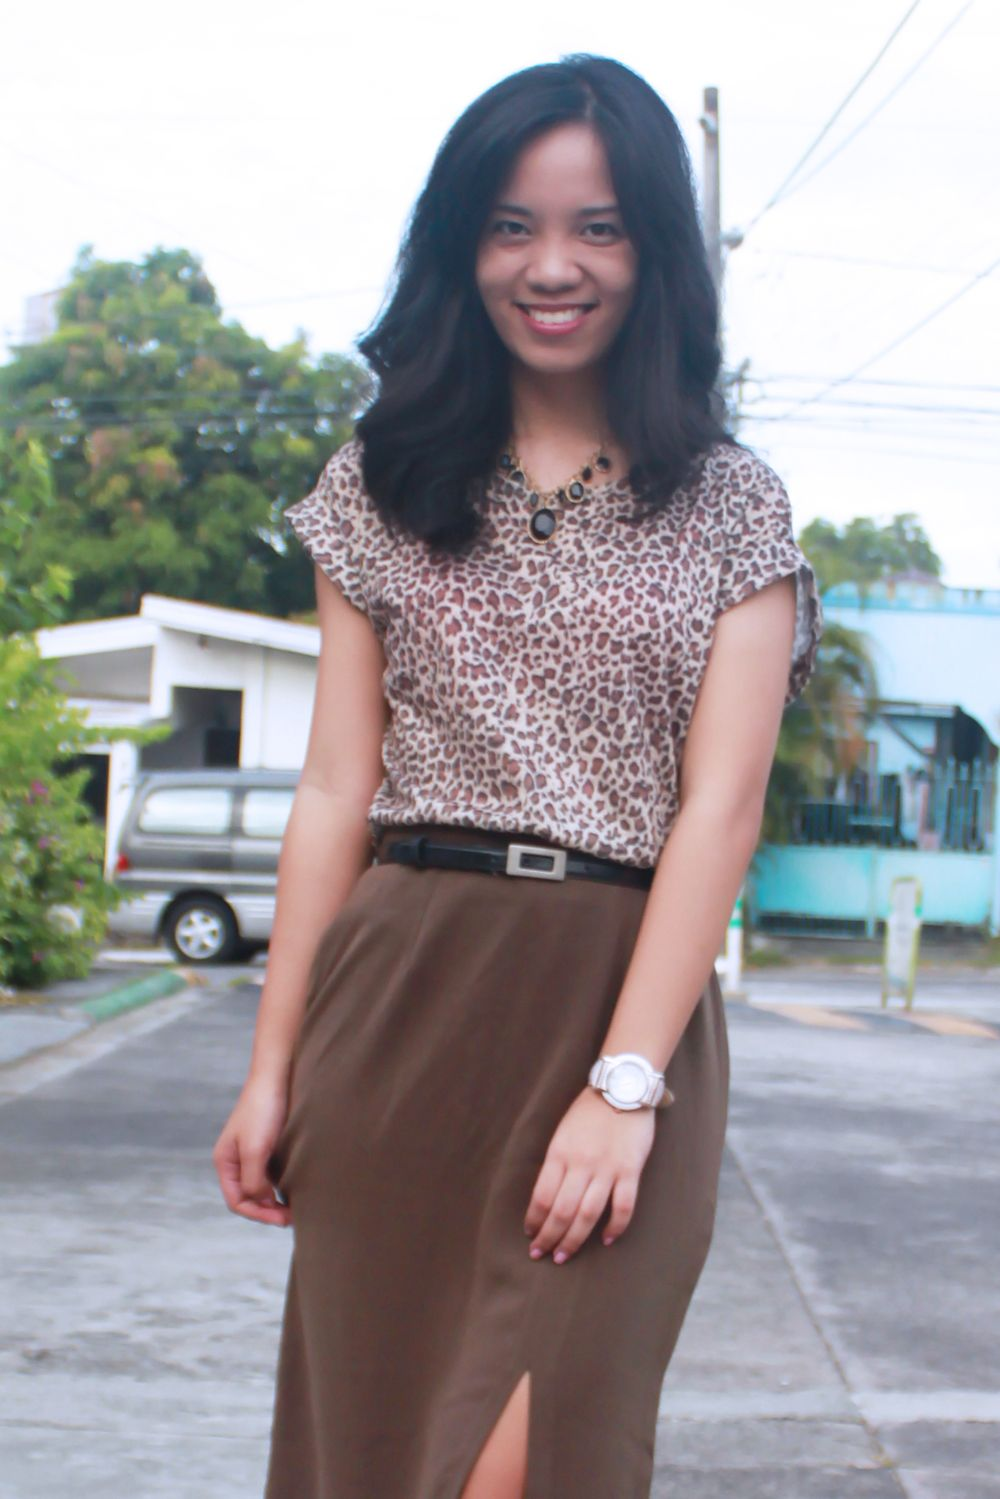 Leopard print to #work. A fun twist to your office attire! via Style Surgery (http://spellmegann.blogspot.com)